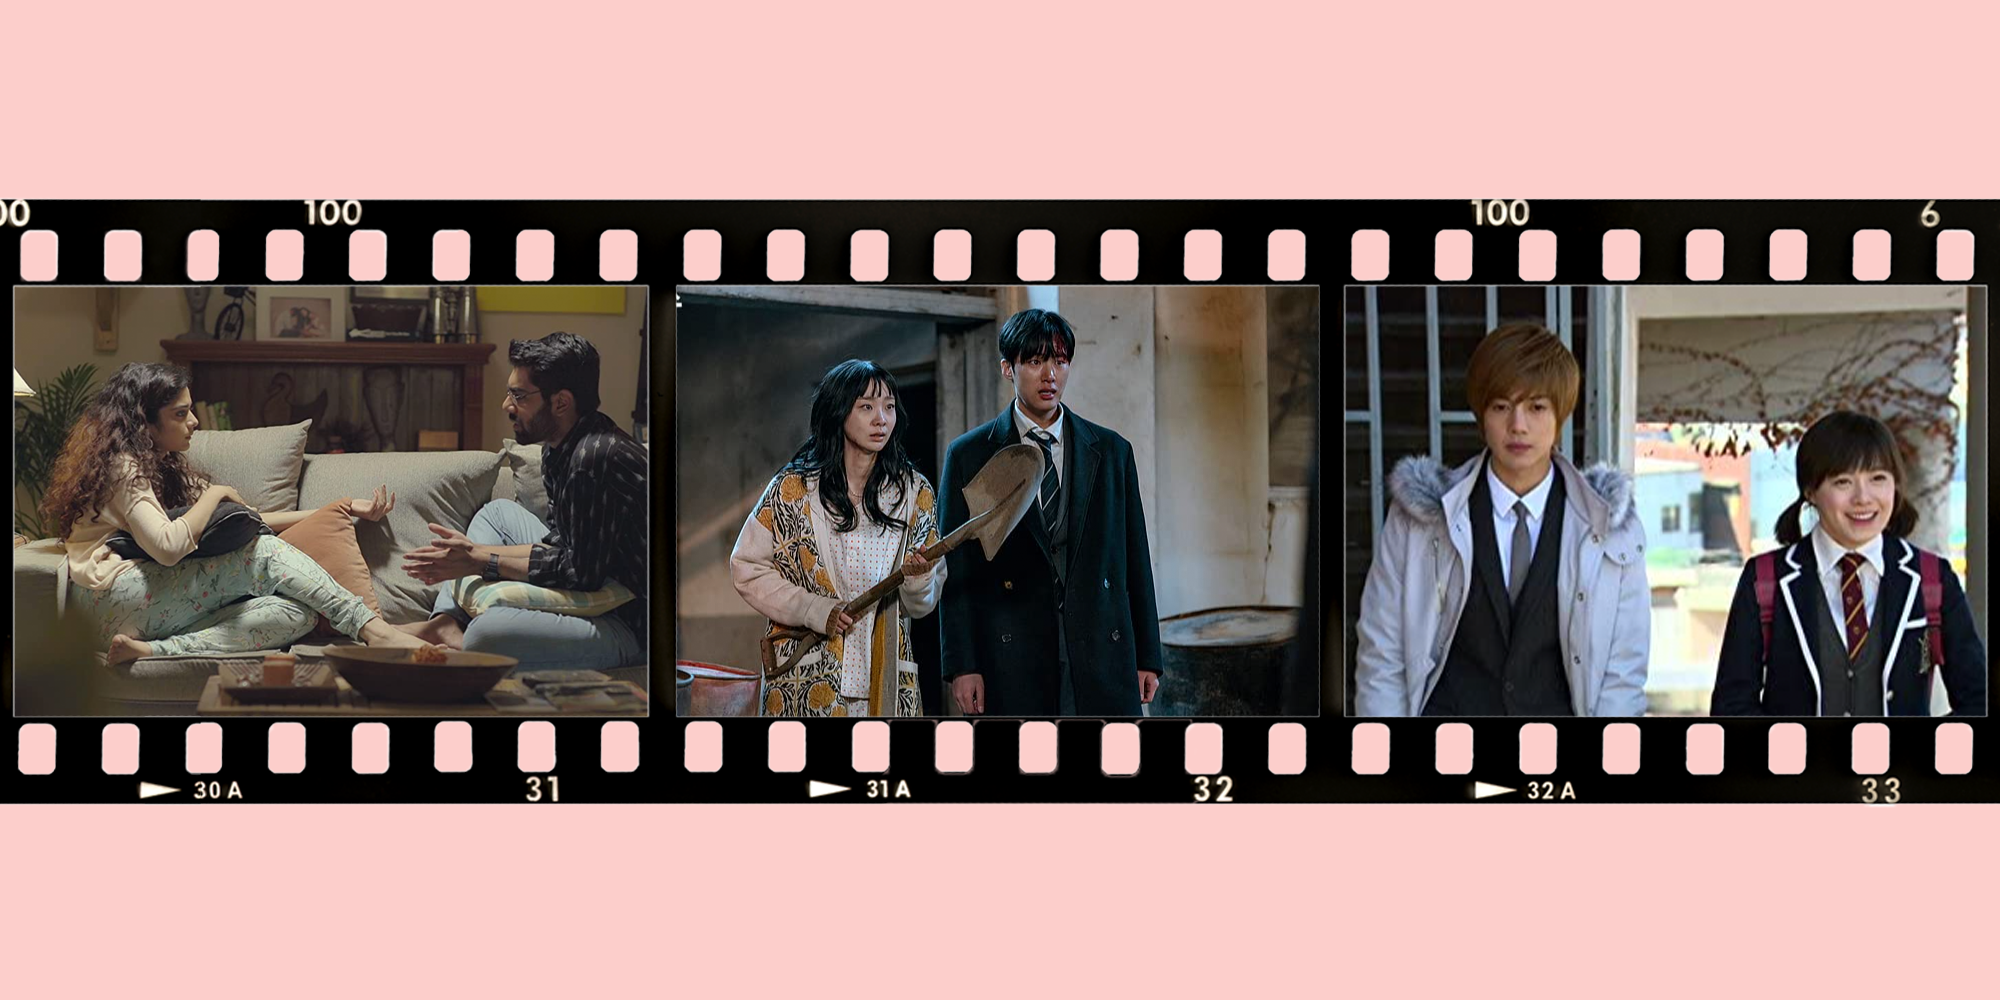 www.yahoo.com: The 10 Best Asian Dramas on Netflix You Can Start Watching This Weekend